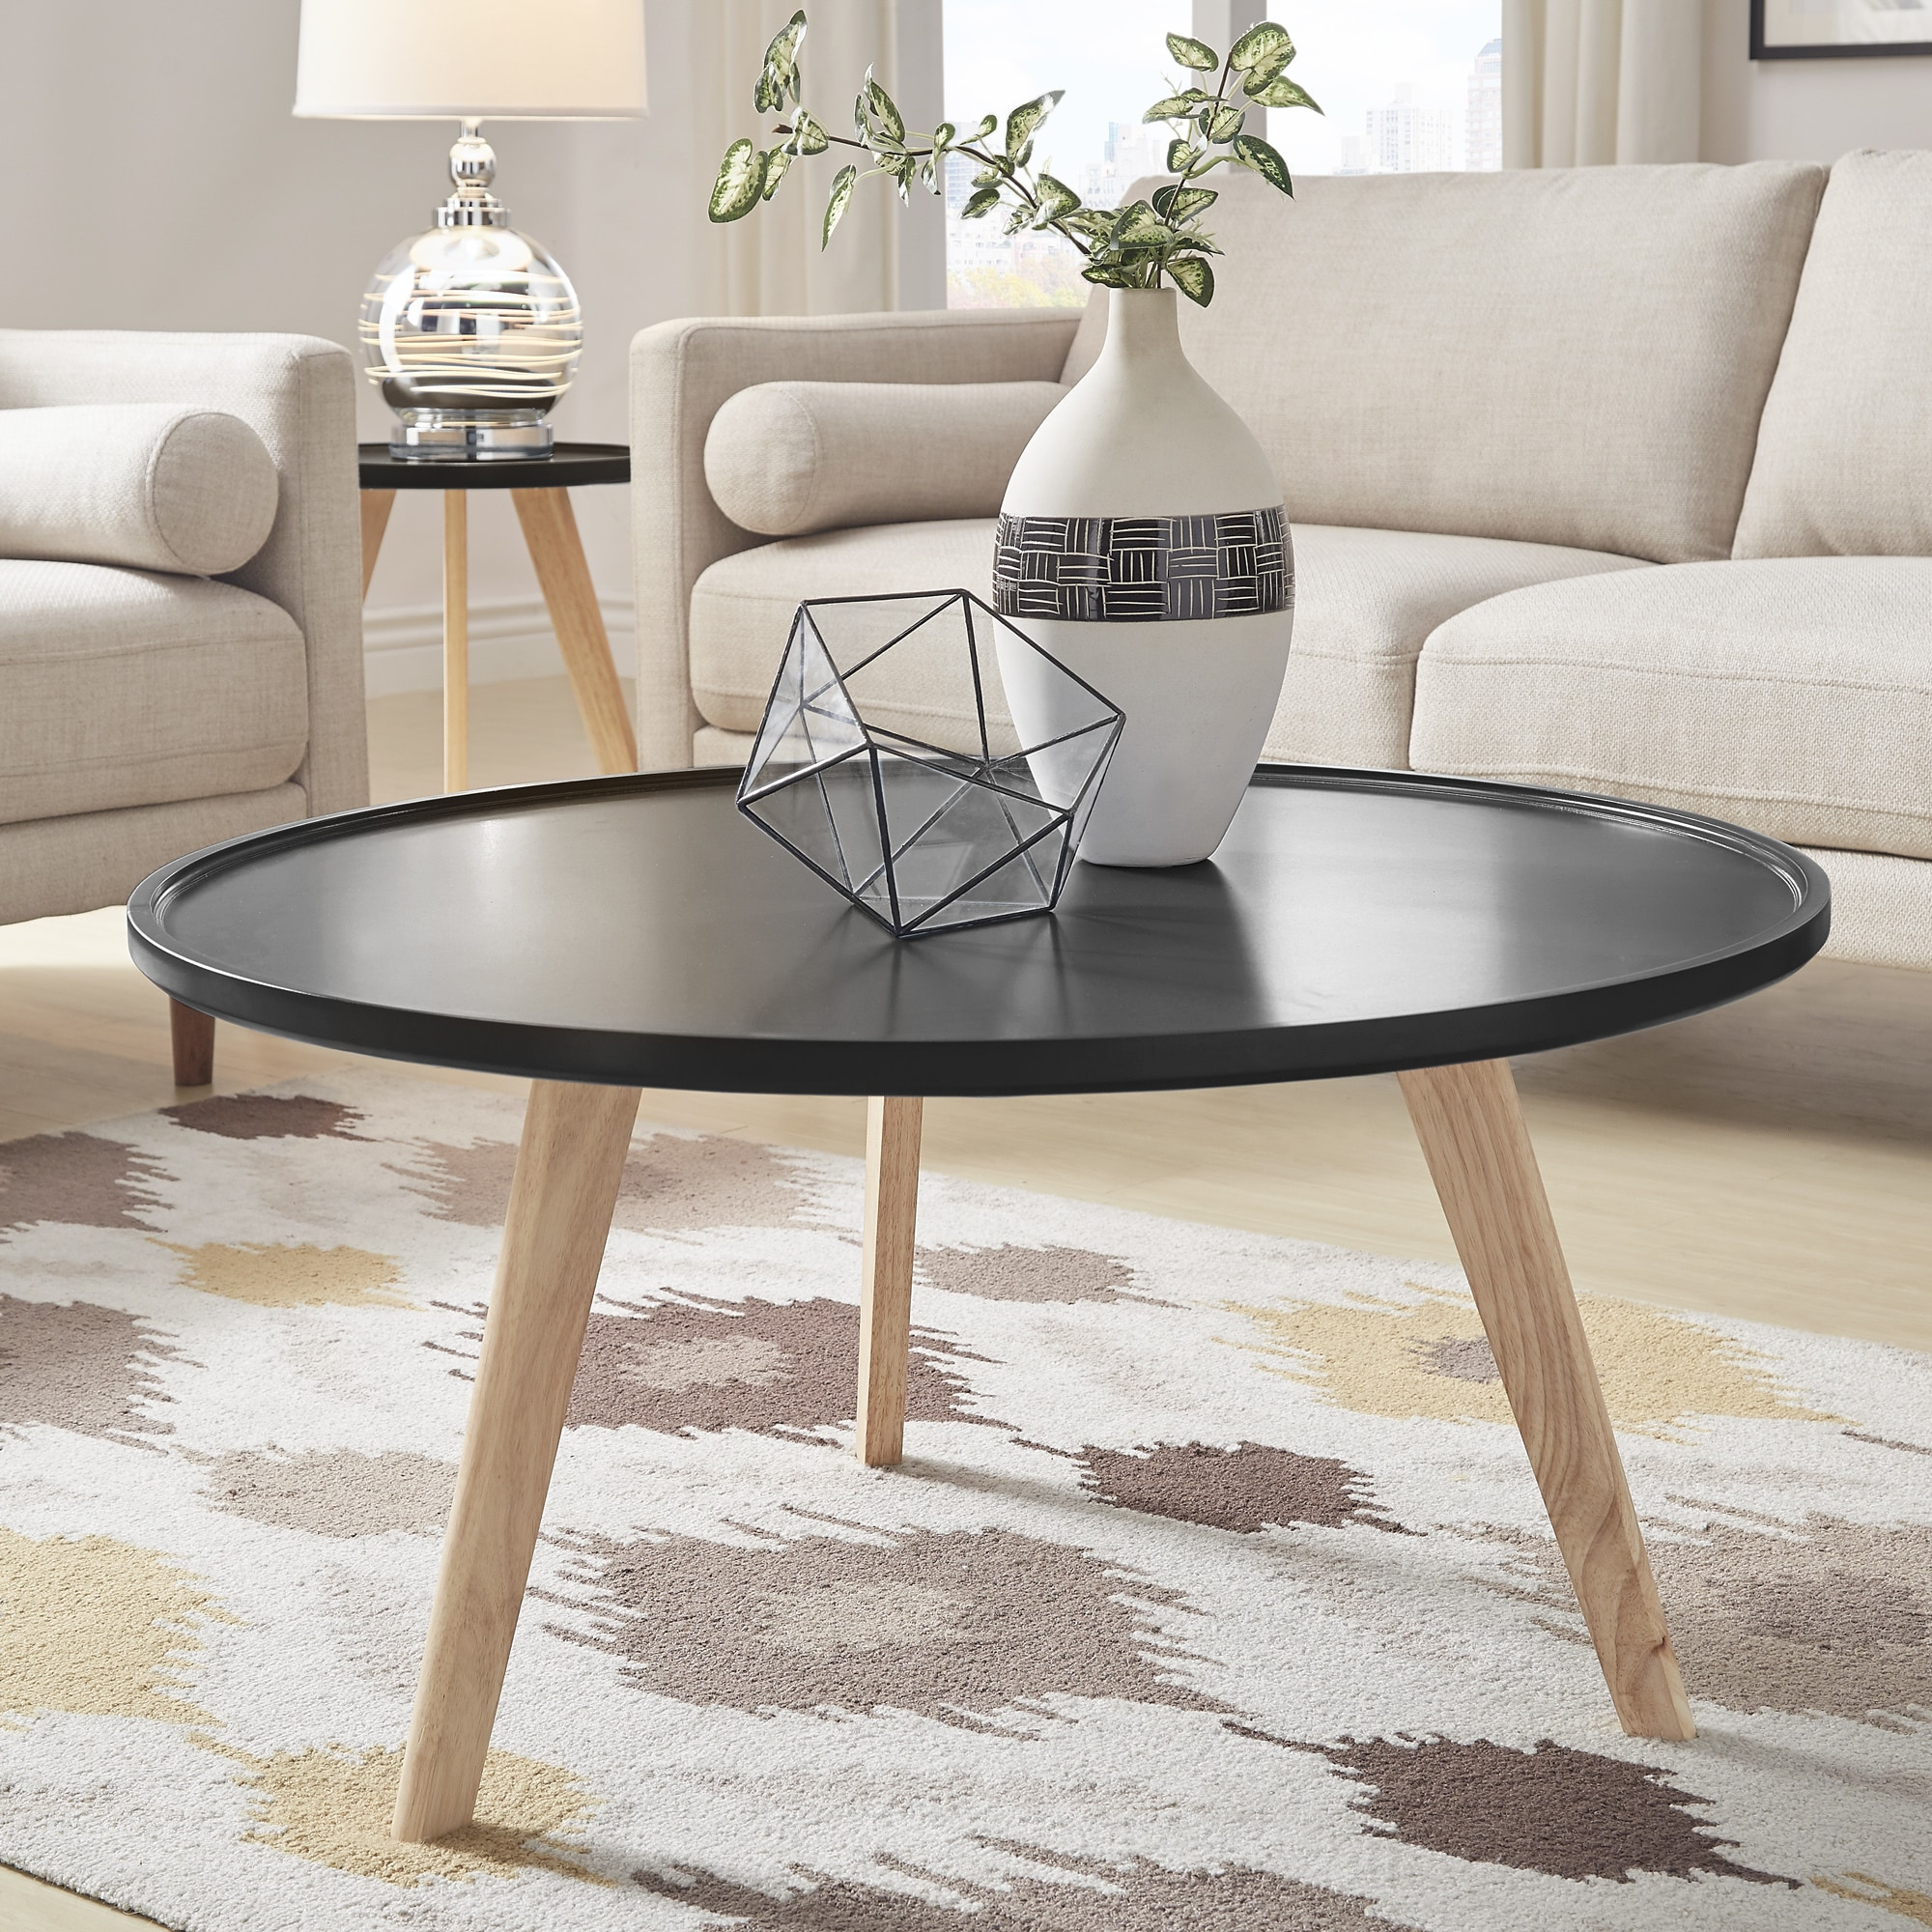 Shop hayden mid century round coffee table by inspire q modern free shipping today overstock com 19457142